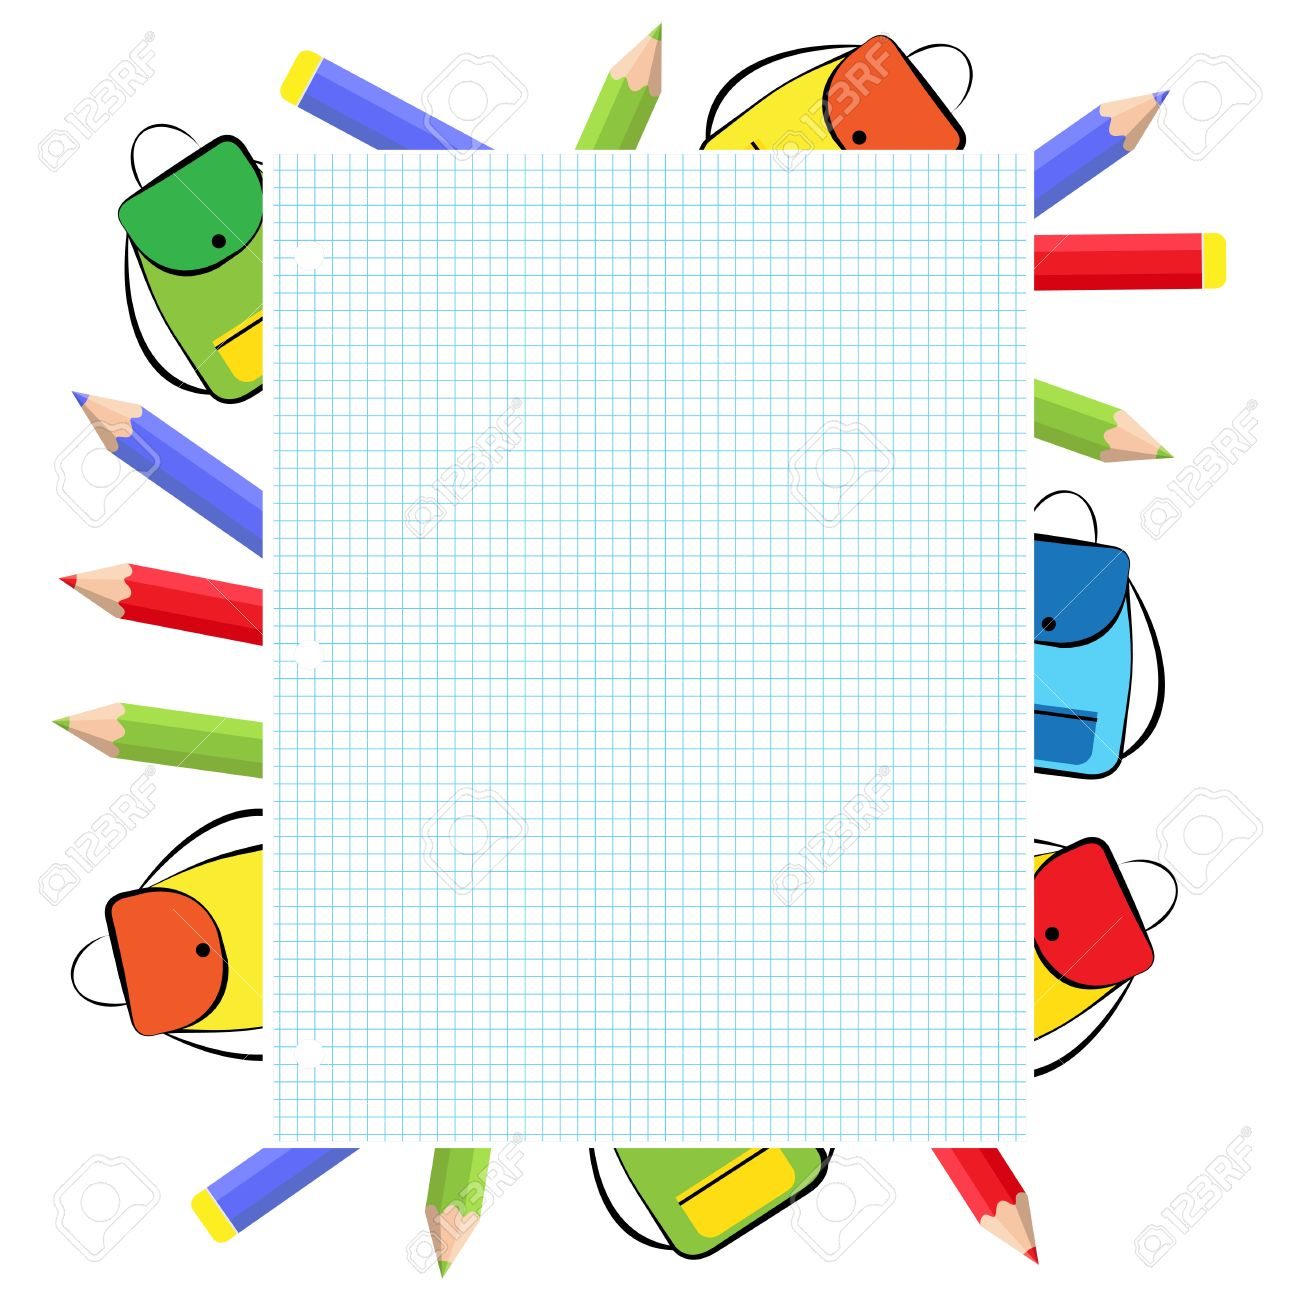 4b01d70ef4e2 School frame with colorful crayons and backpack Stock Vector - 40566766